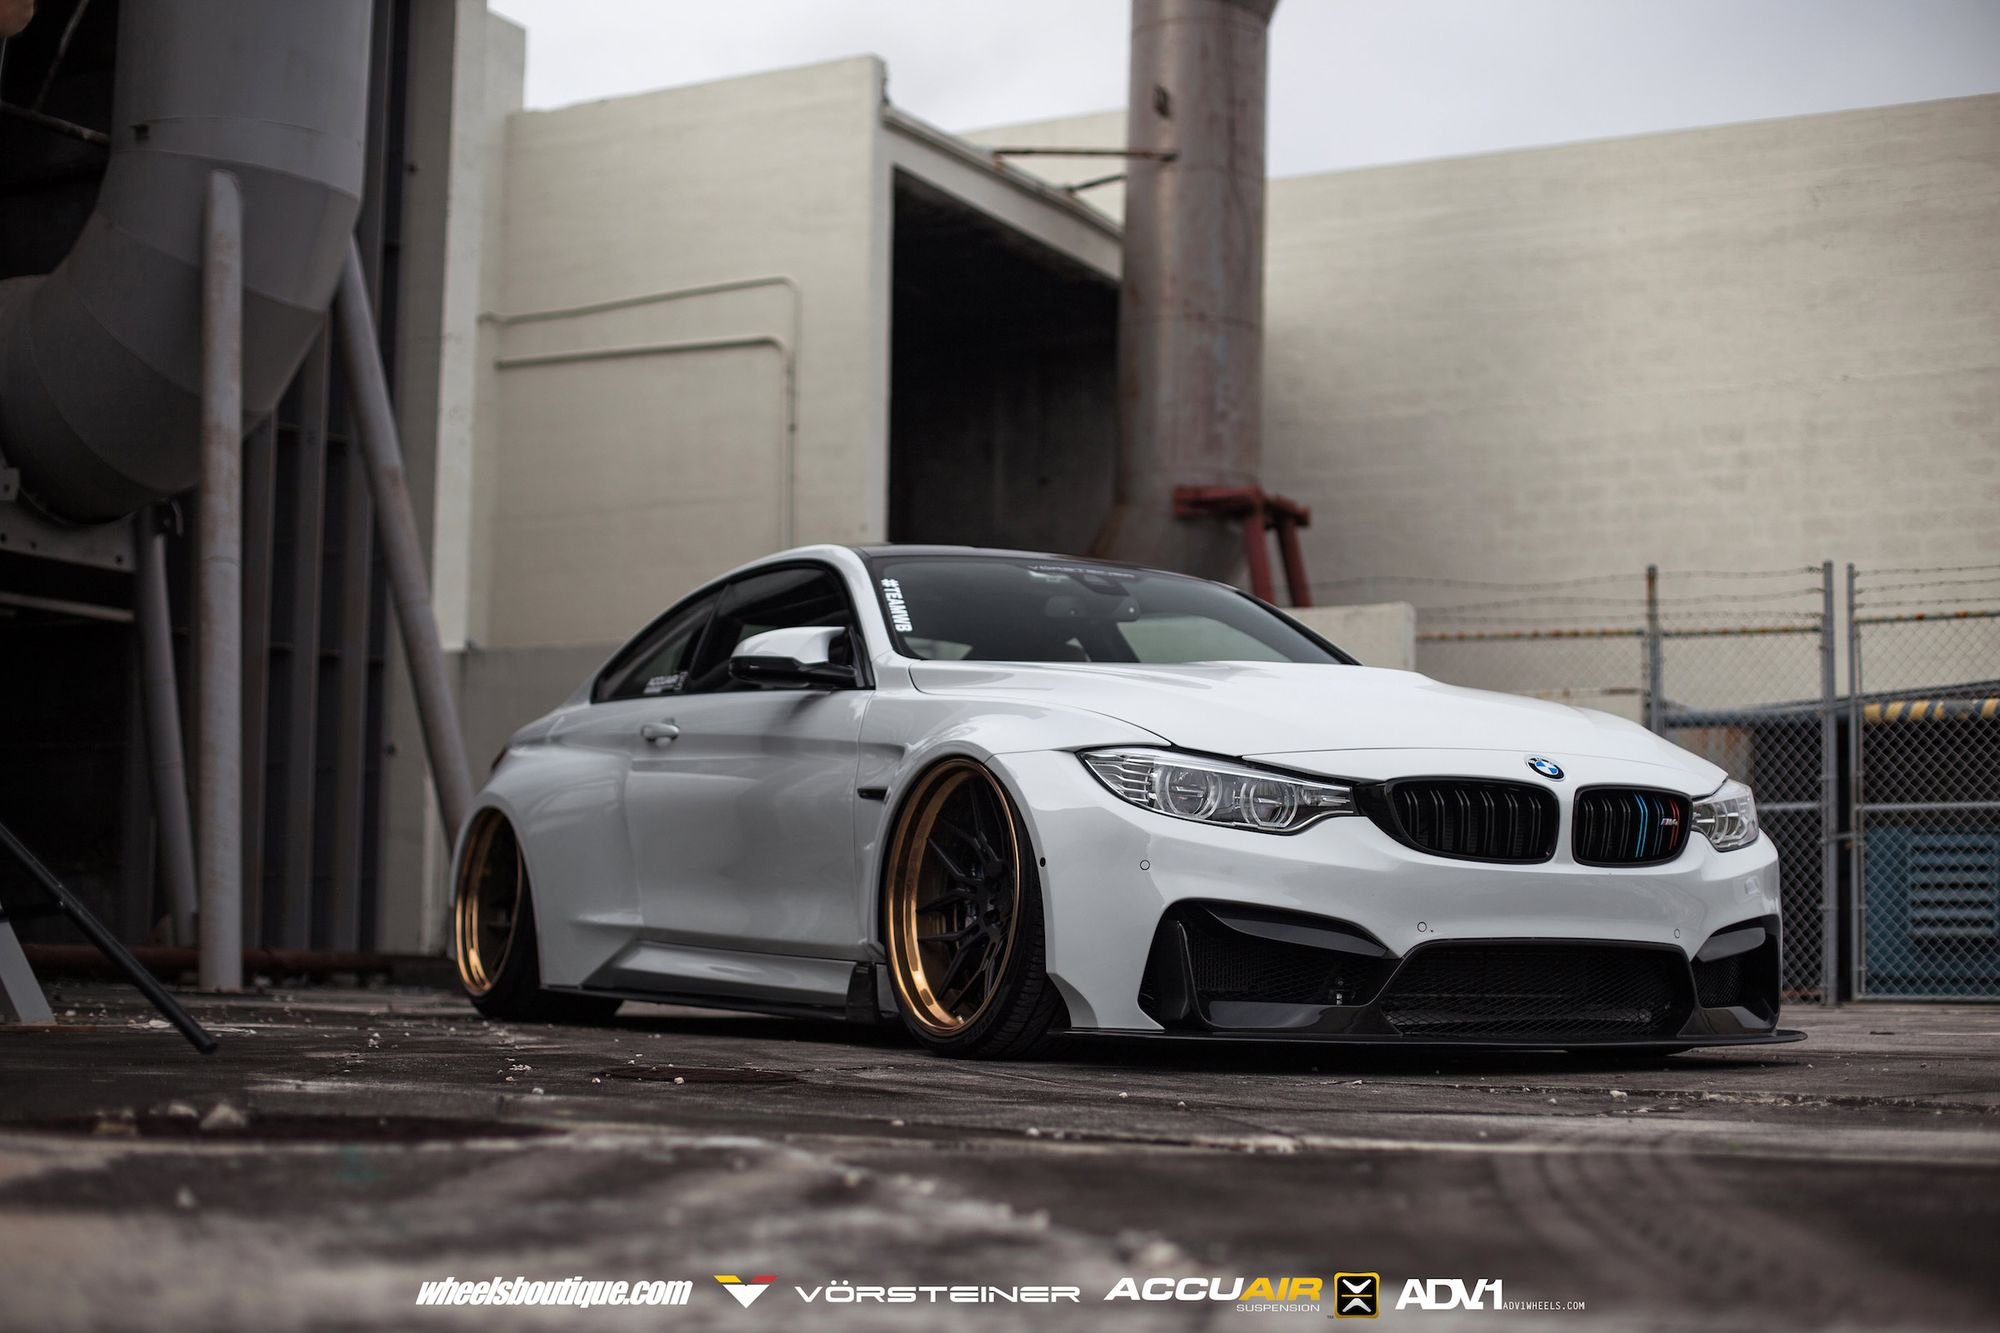 Heavily Modified BMW M4 Coupe Slammed To the Ground ...